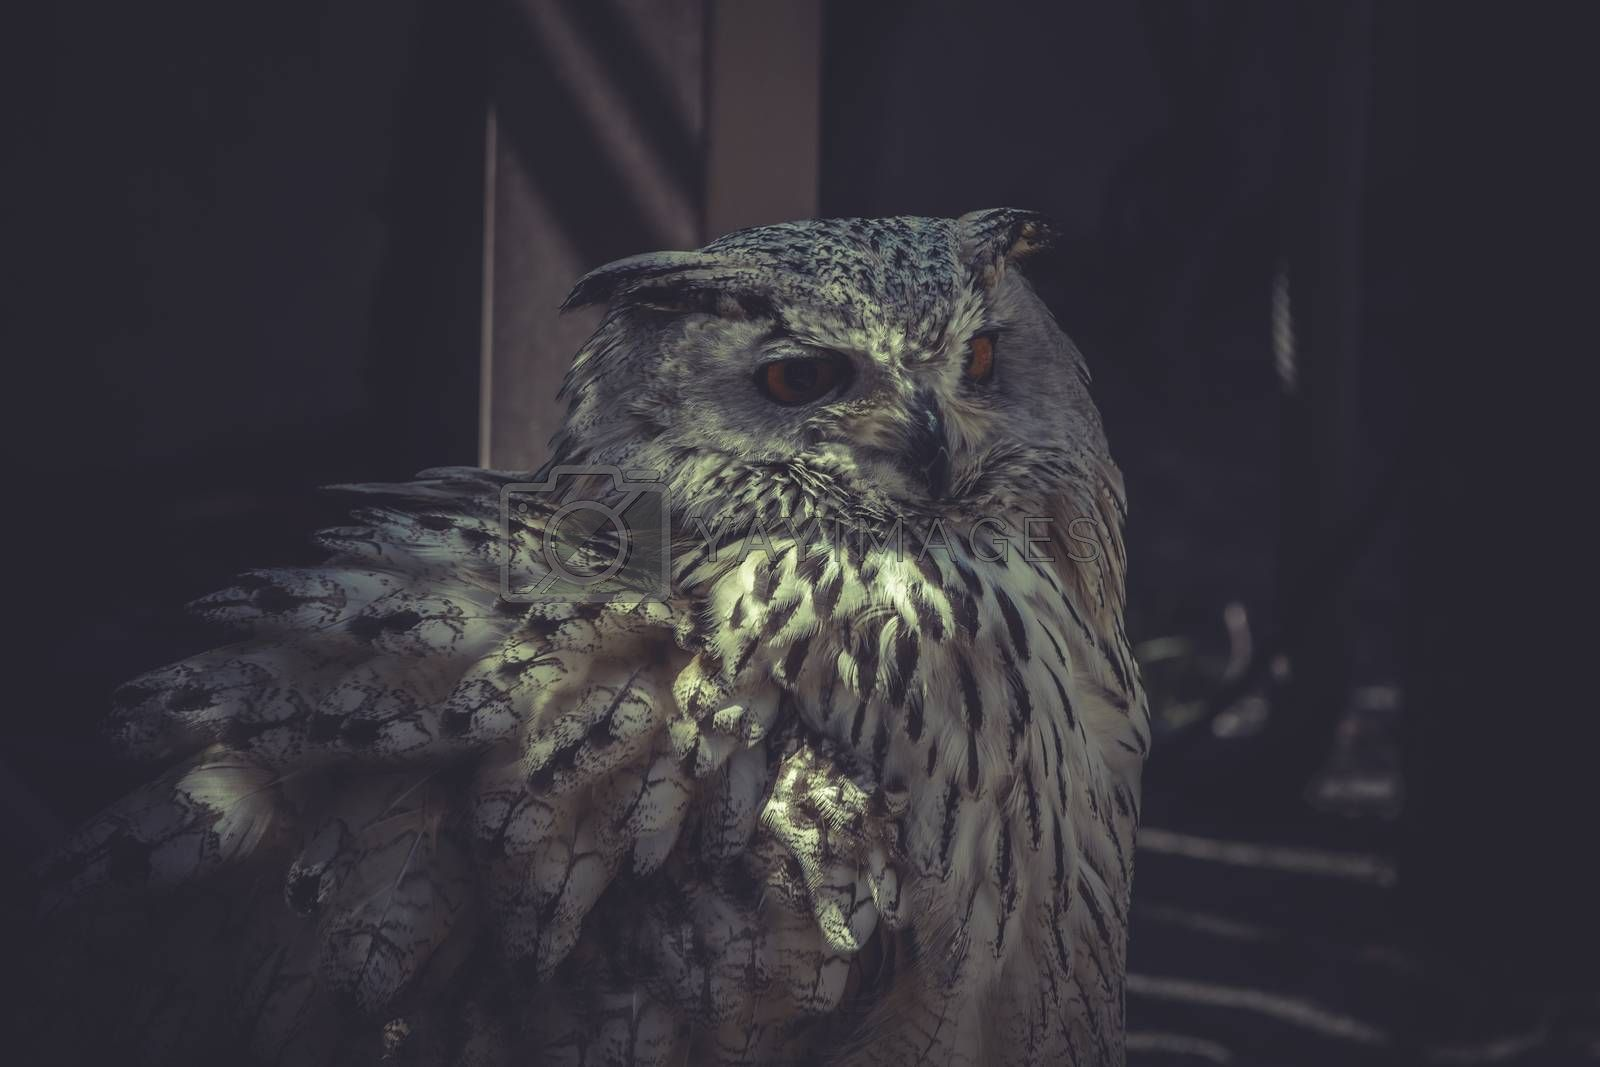 Owl portrait with beautiful feathers